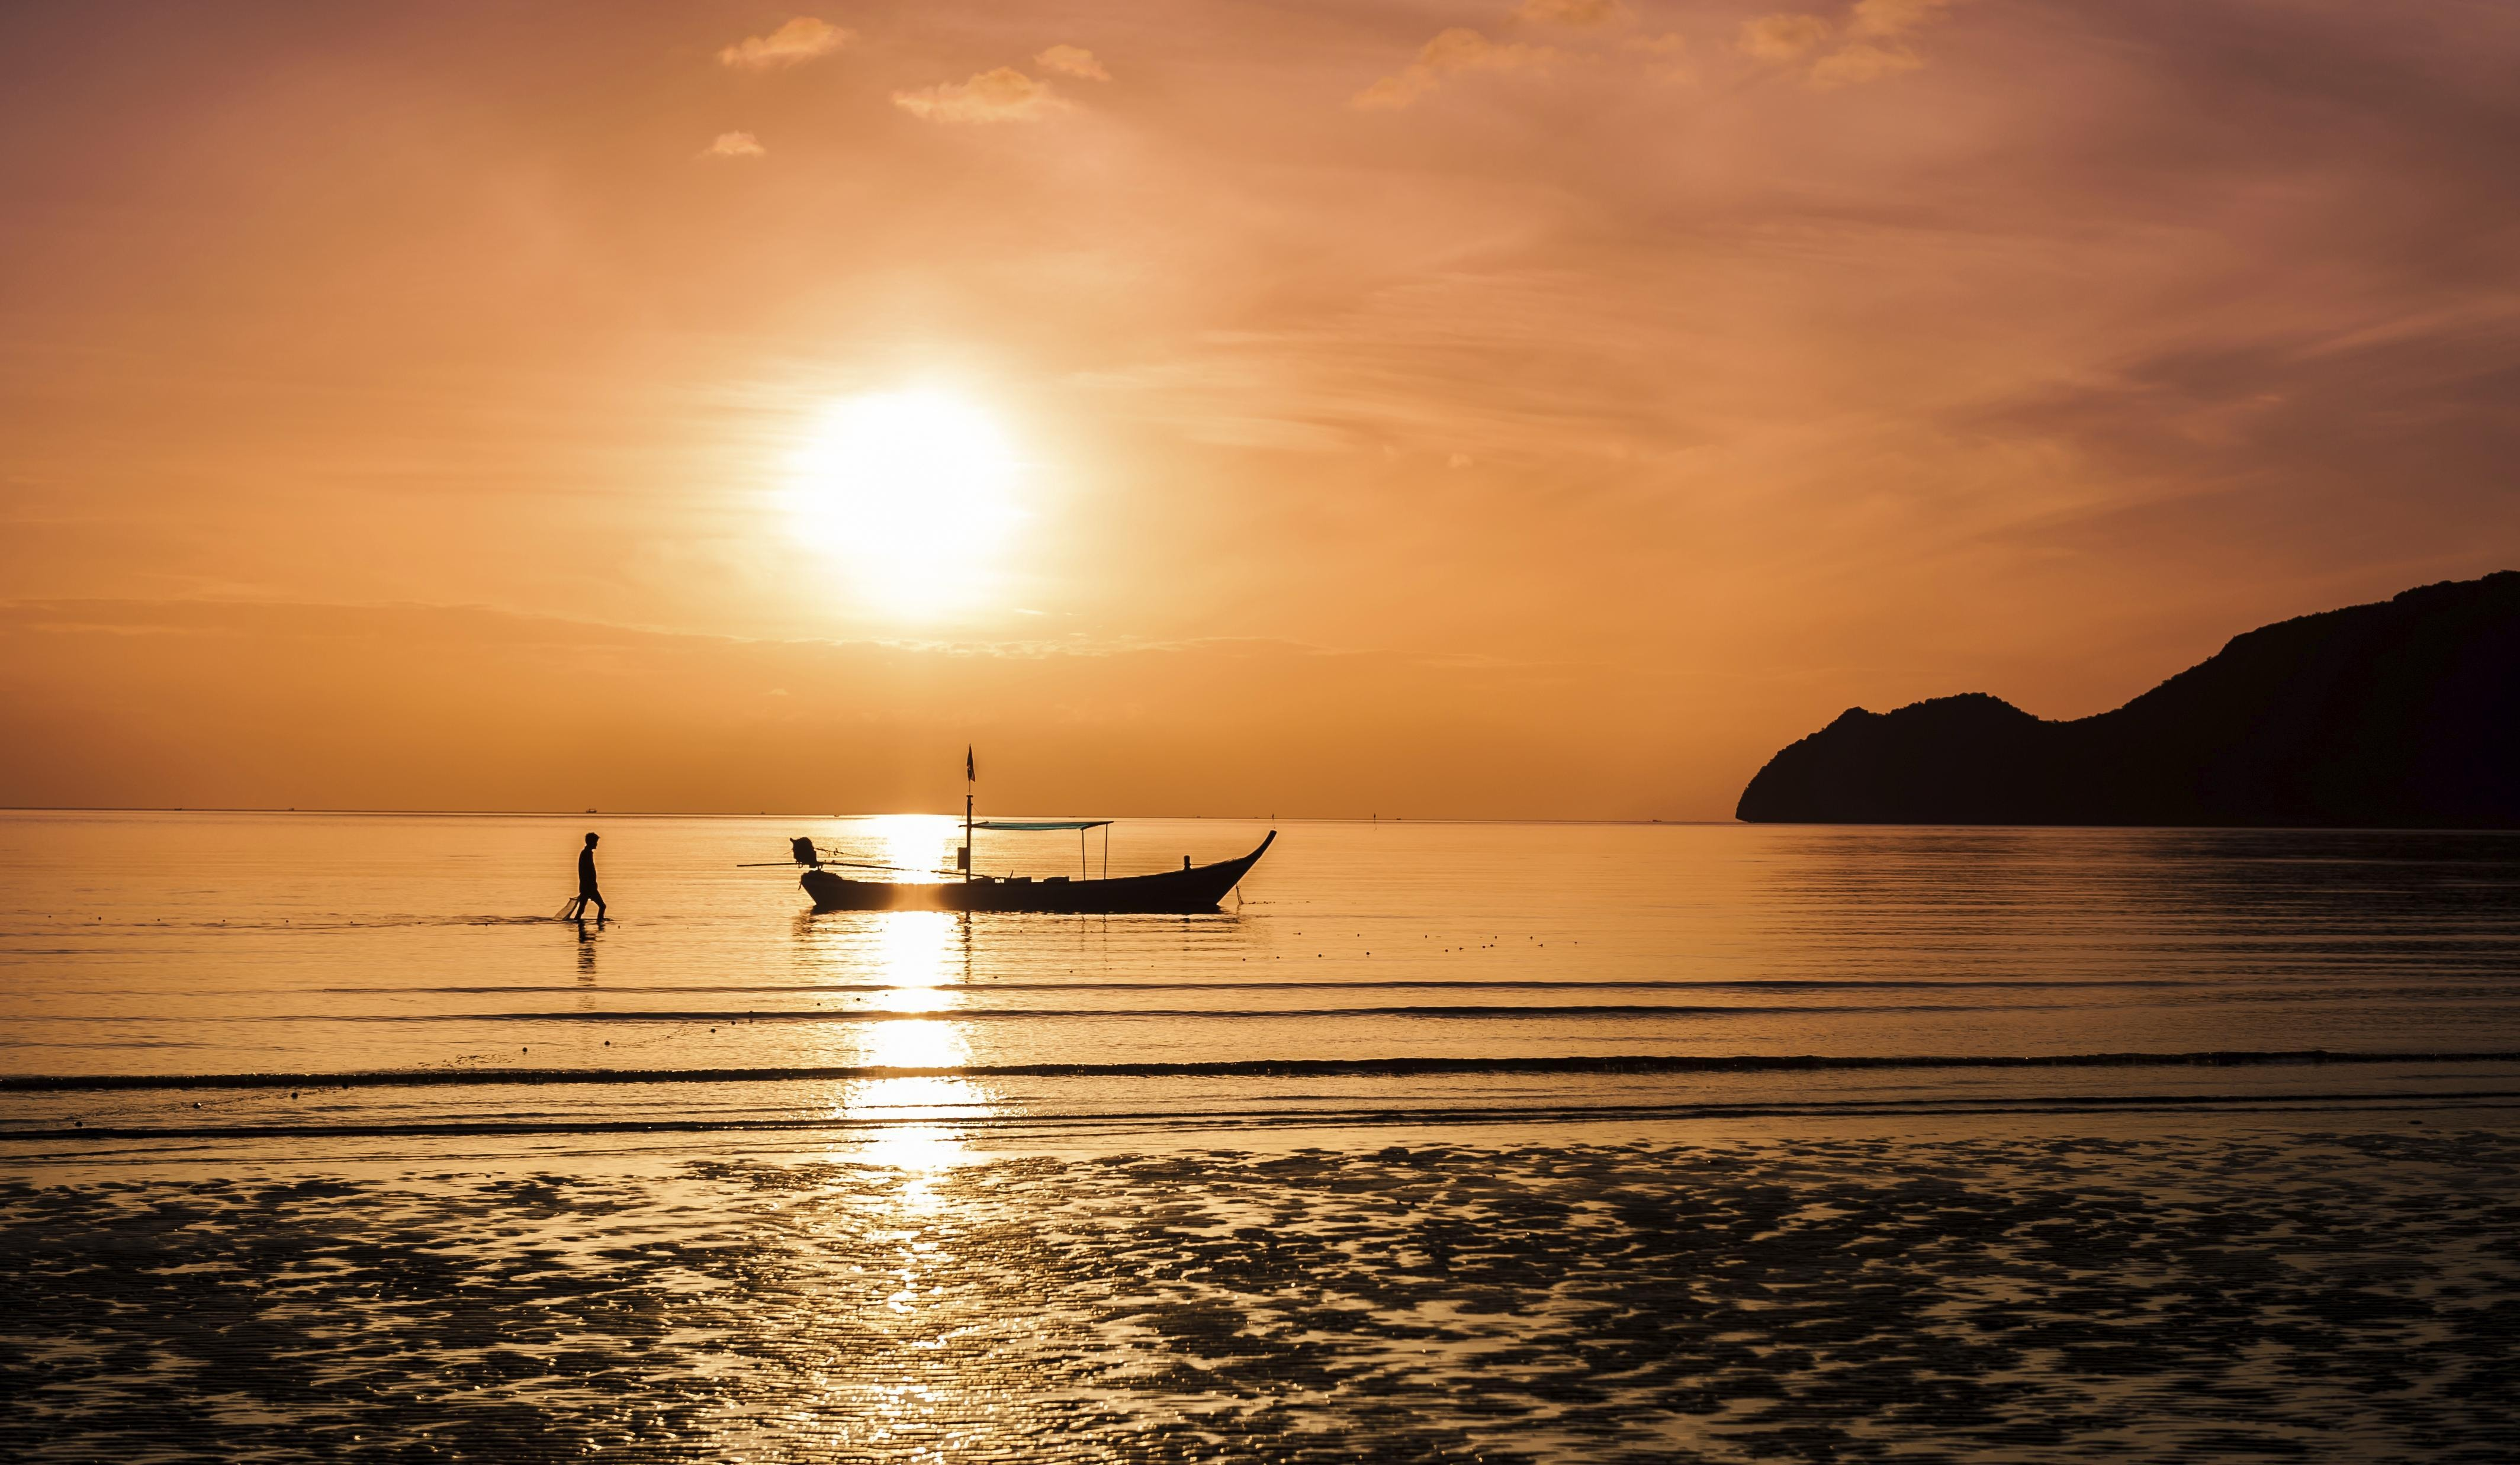 How to Spend 1 Day in Hua Hin